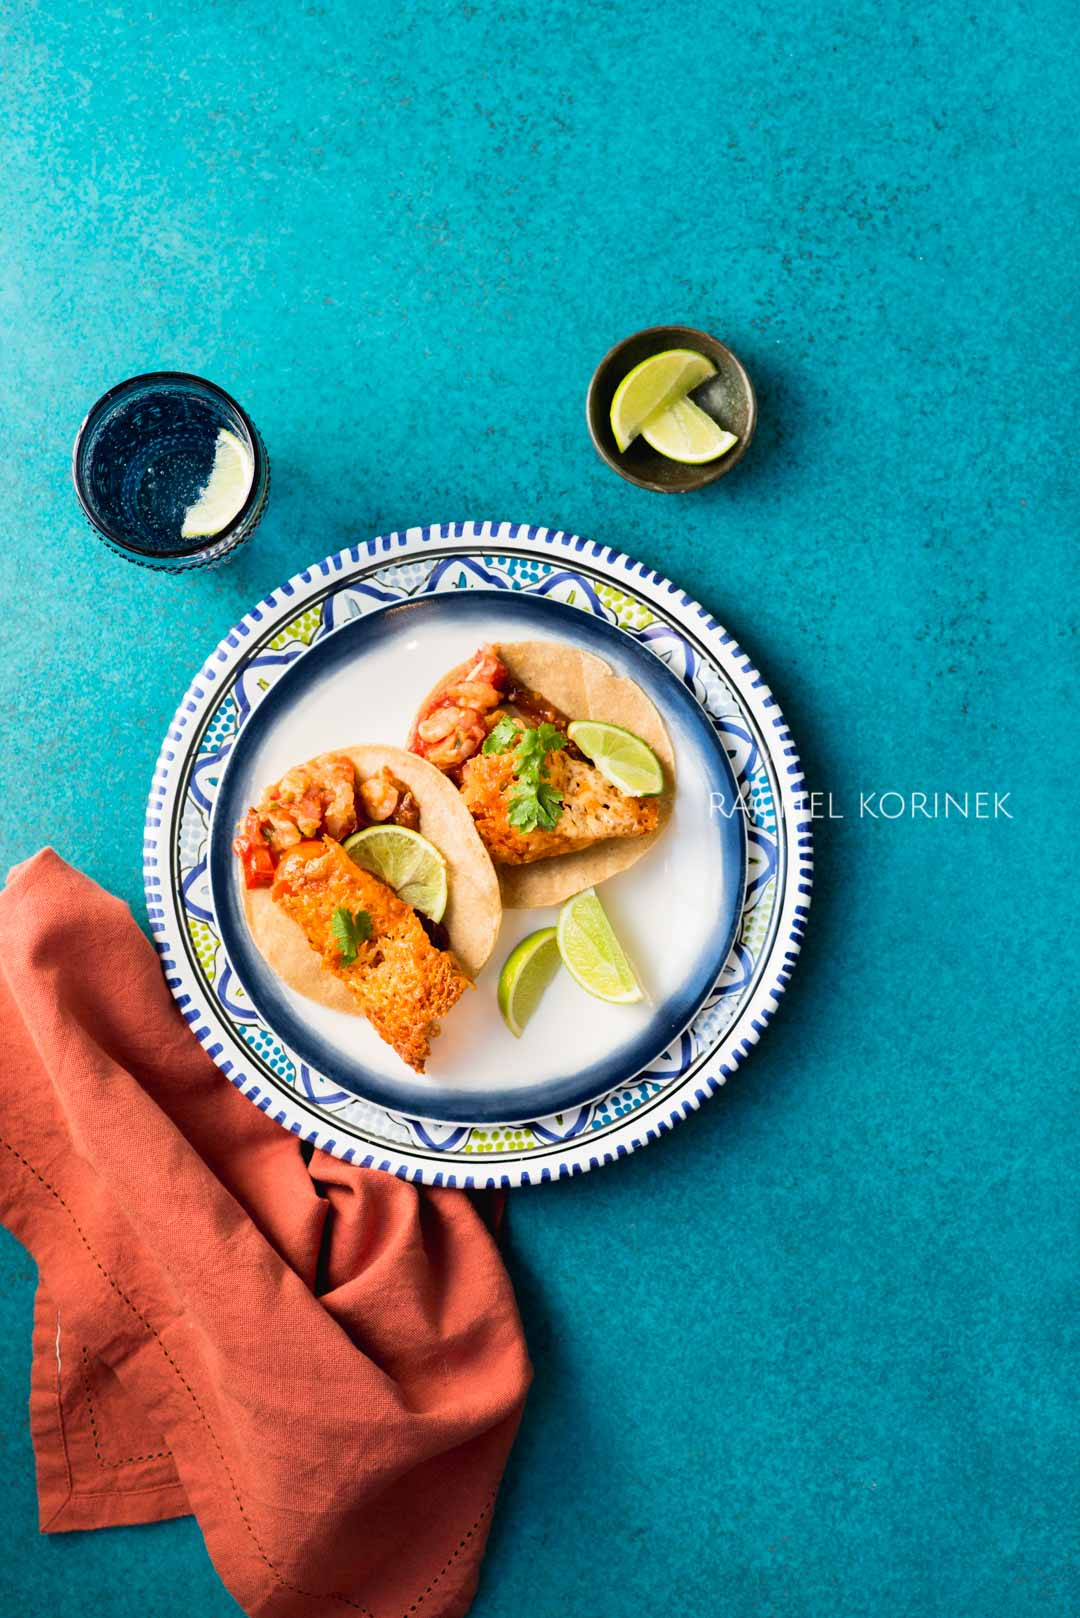 Rachel Korinek Melbourne Food Photographer Mexican  Click to check out my latest food photography projects.  #twolovesstudio #beautifulcuisine #foodbloggerpro #foodphotography #learnfoodphotography #foodblogger #learnphotography #foodstyling #lightingtips #naturallight #foodphotographer